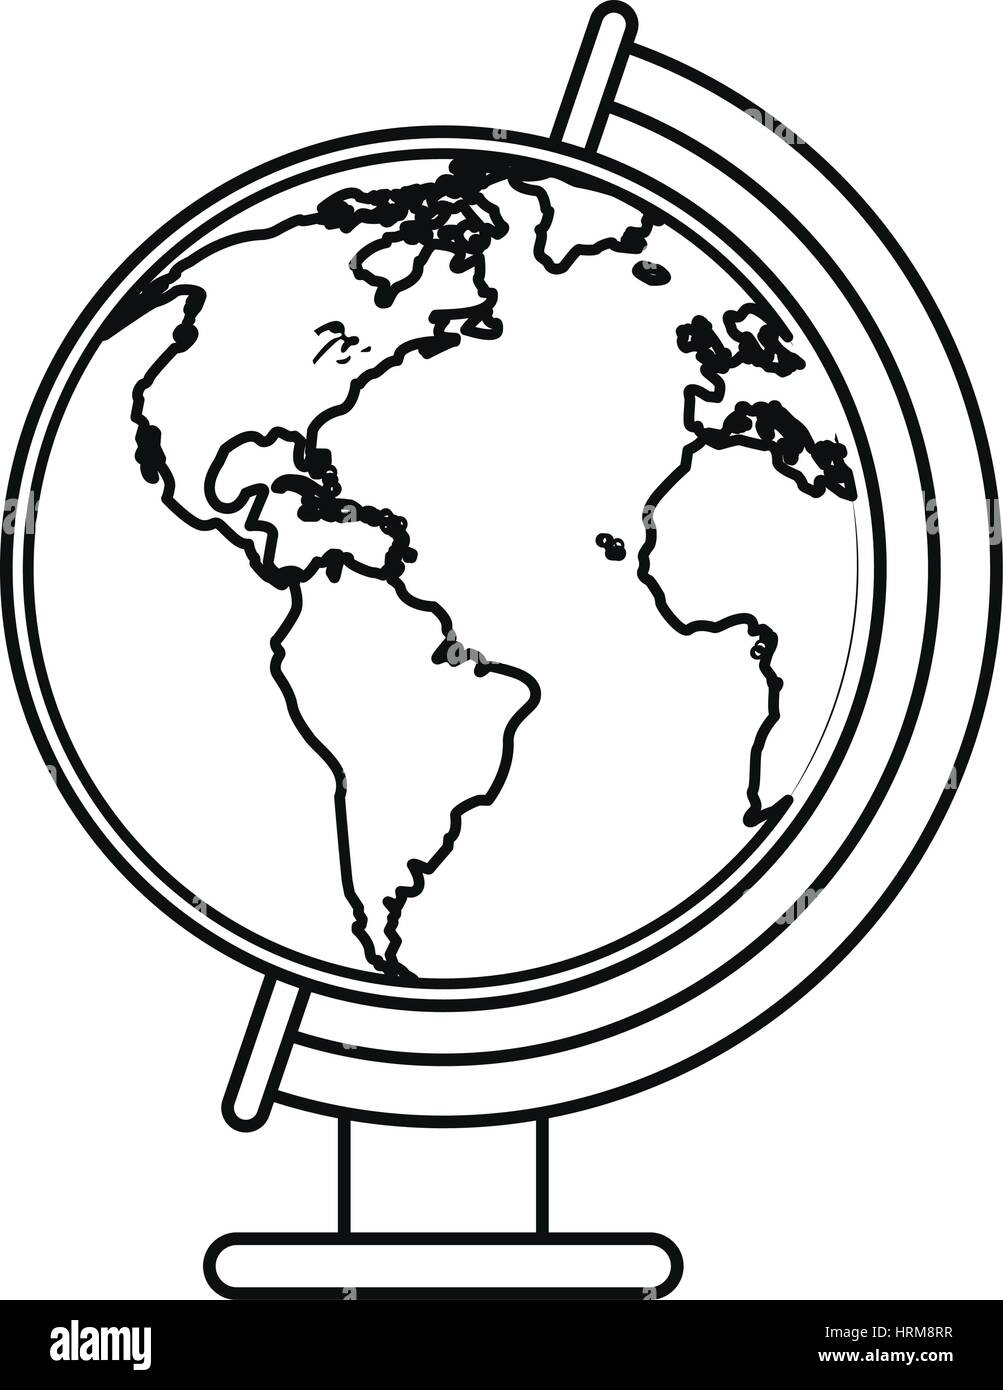 Line drawing world map stock photos line drawing world map stock globe world map thin line stock image gumiabroncs Choice Image